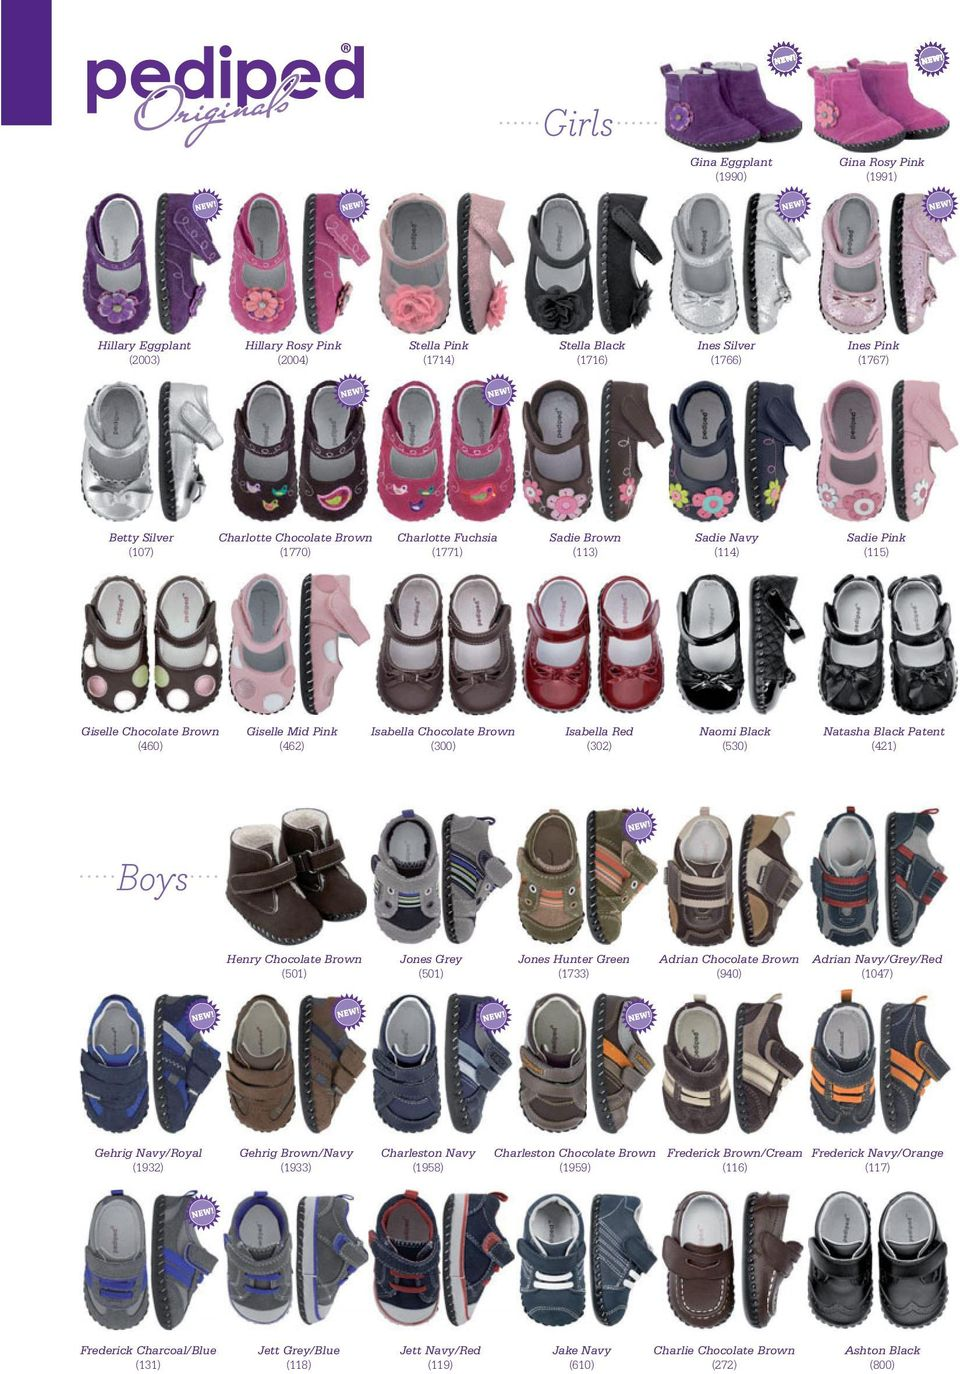 Isabella Red (302) Naomi Black (530) Natasha Black Patent (421) Boys Henry Chocolate Brown (501) Jones Grey (501) Jones Hunter Green (1733) Adrian Chocolate Brown (940) Adrian Navy/Grey/Red (1047)